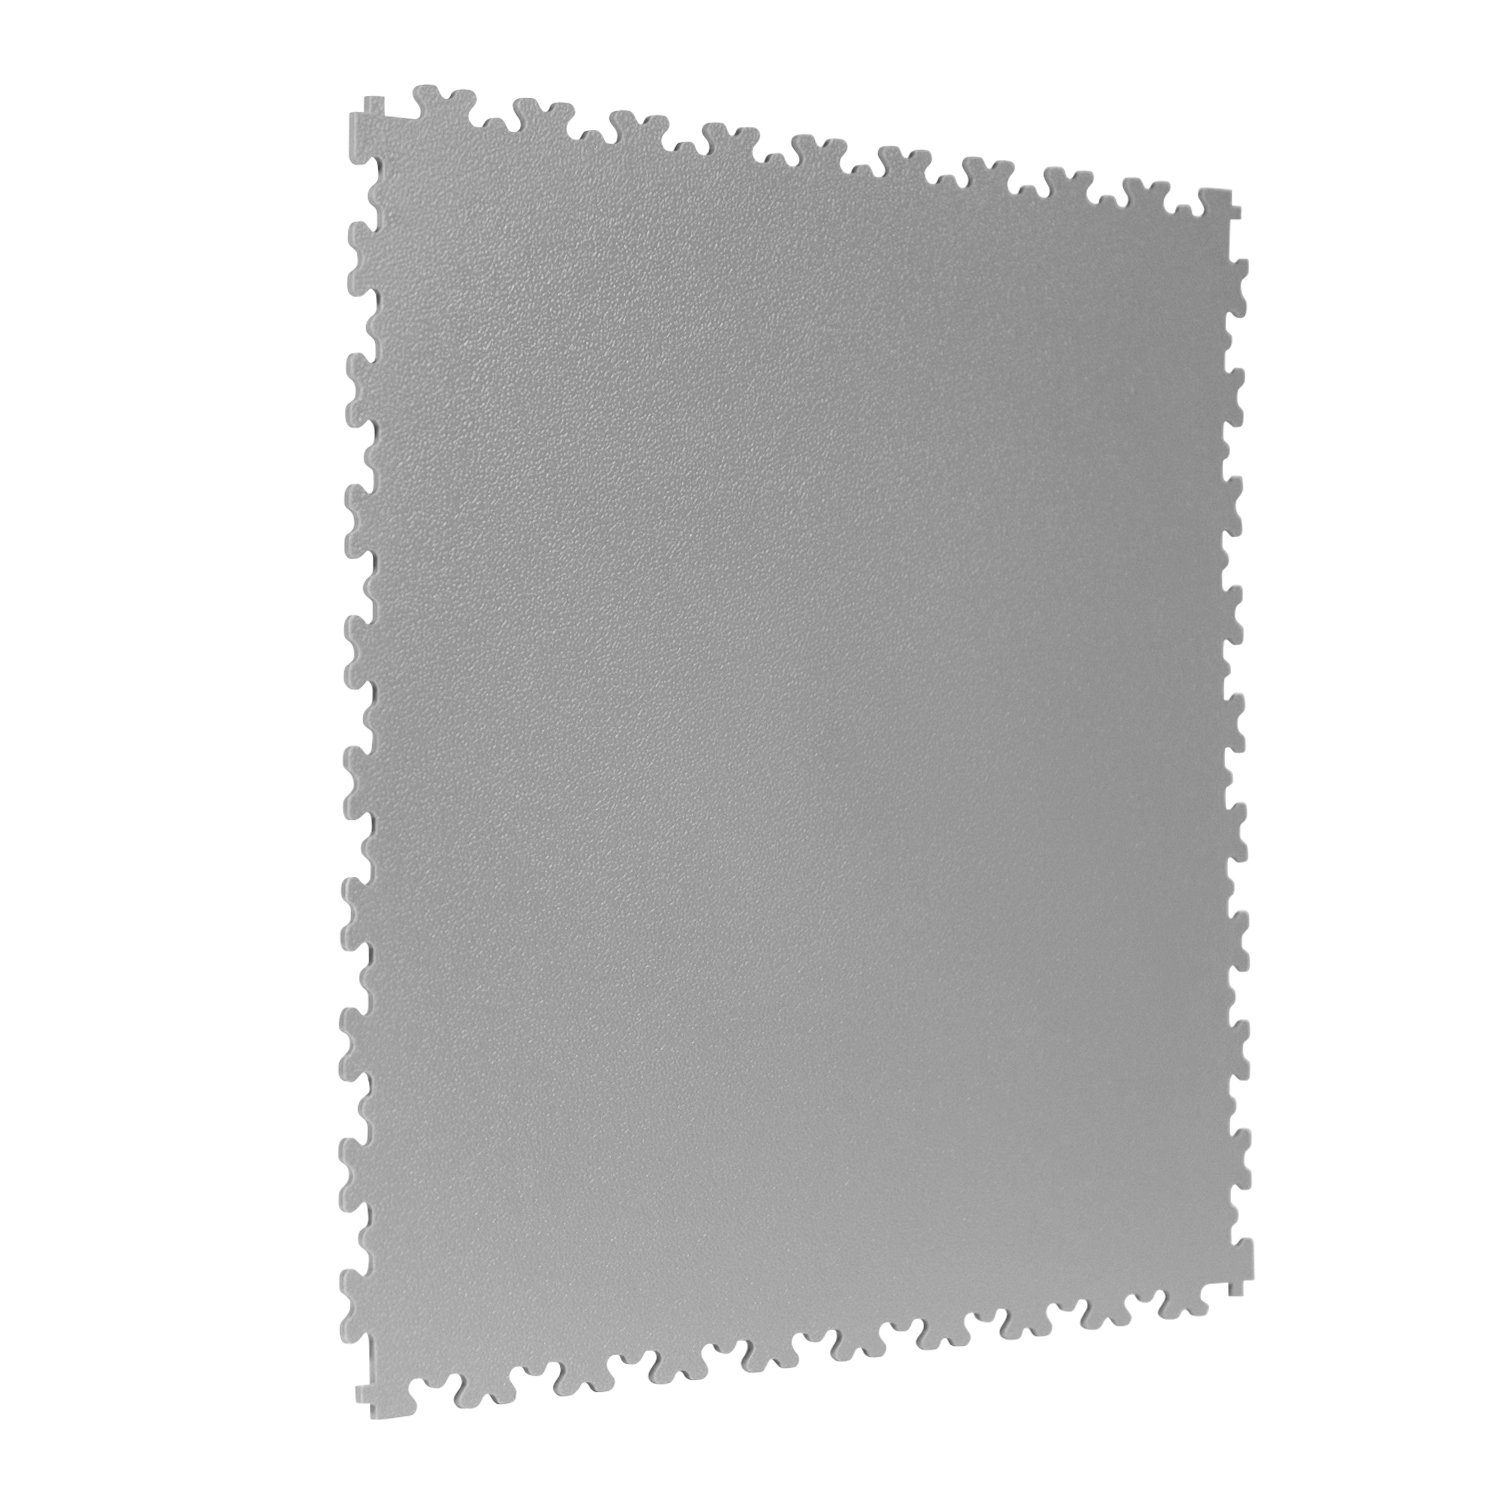 TekTile Textured Light Grey Finish with Dovetail Interlock